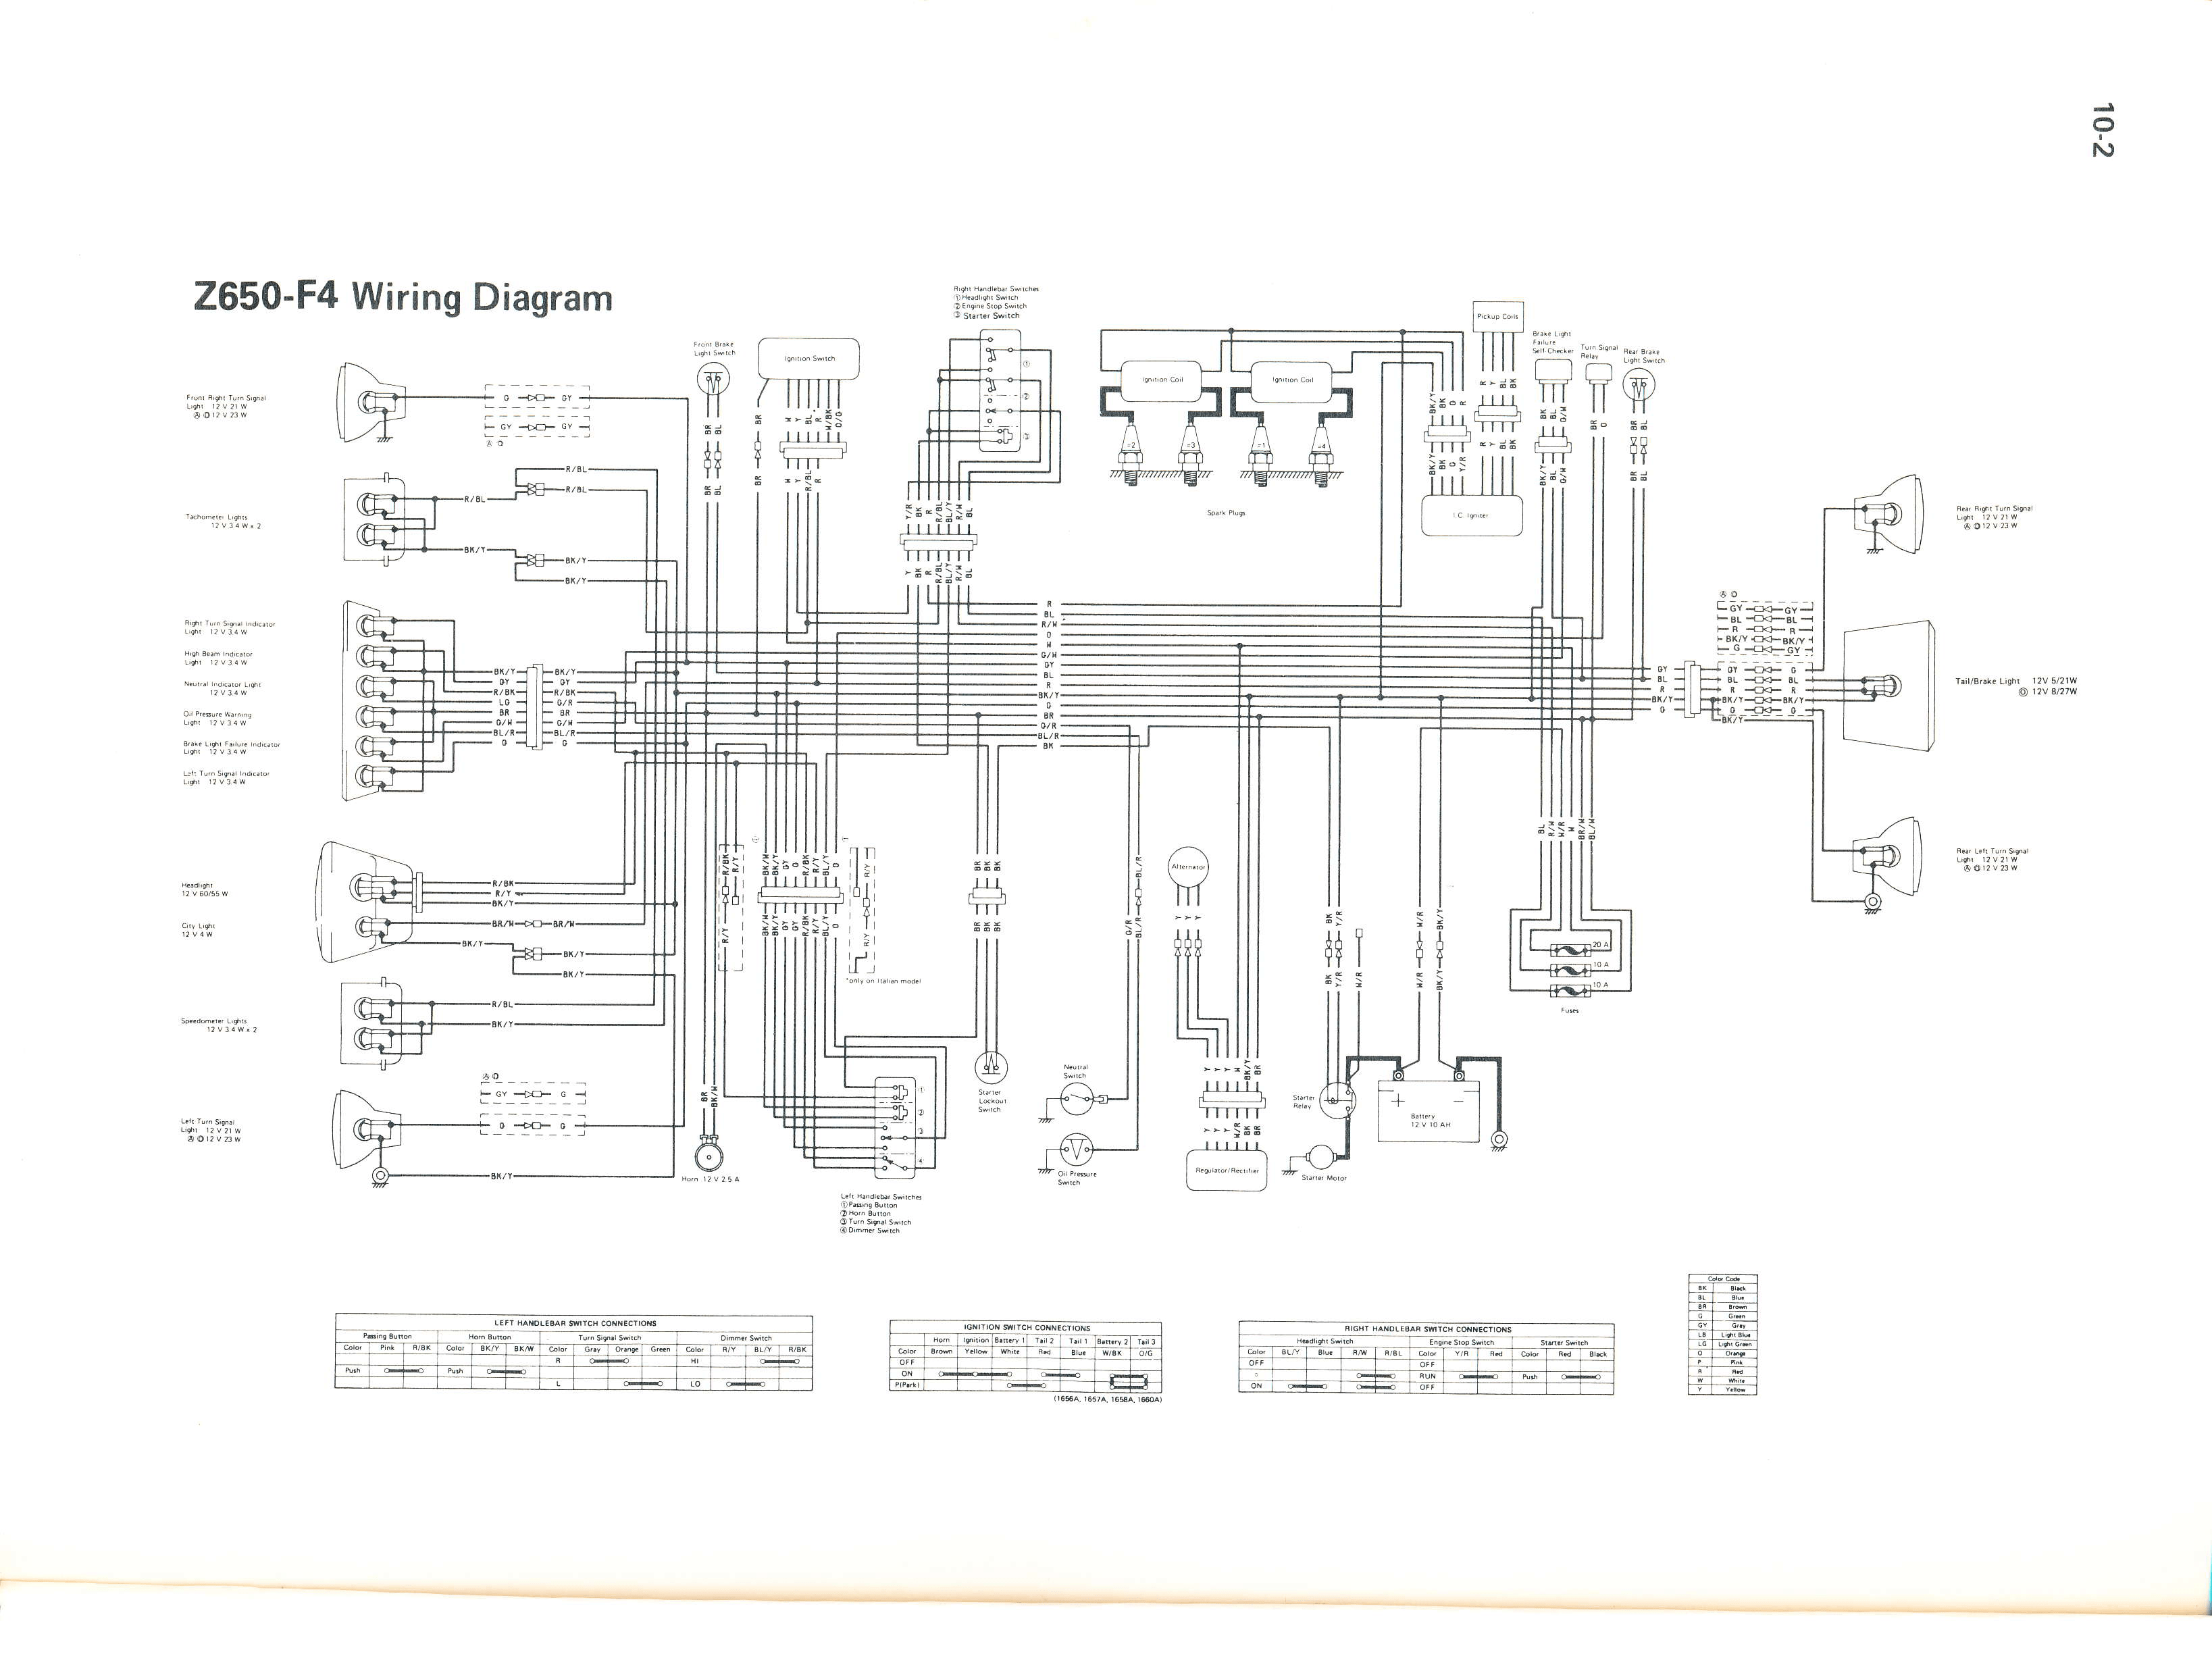 Jacuzzi Hot Tub Motor Wiring Diagram